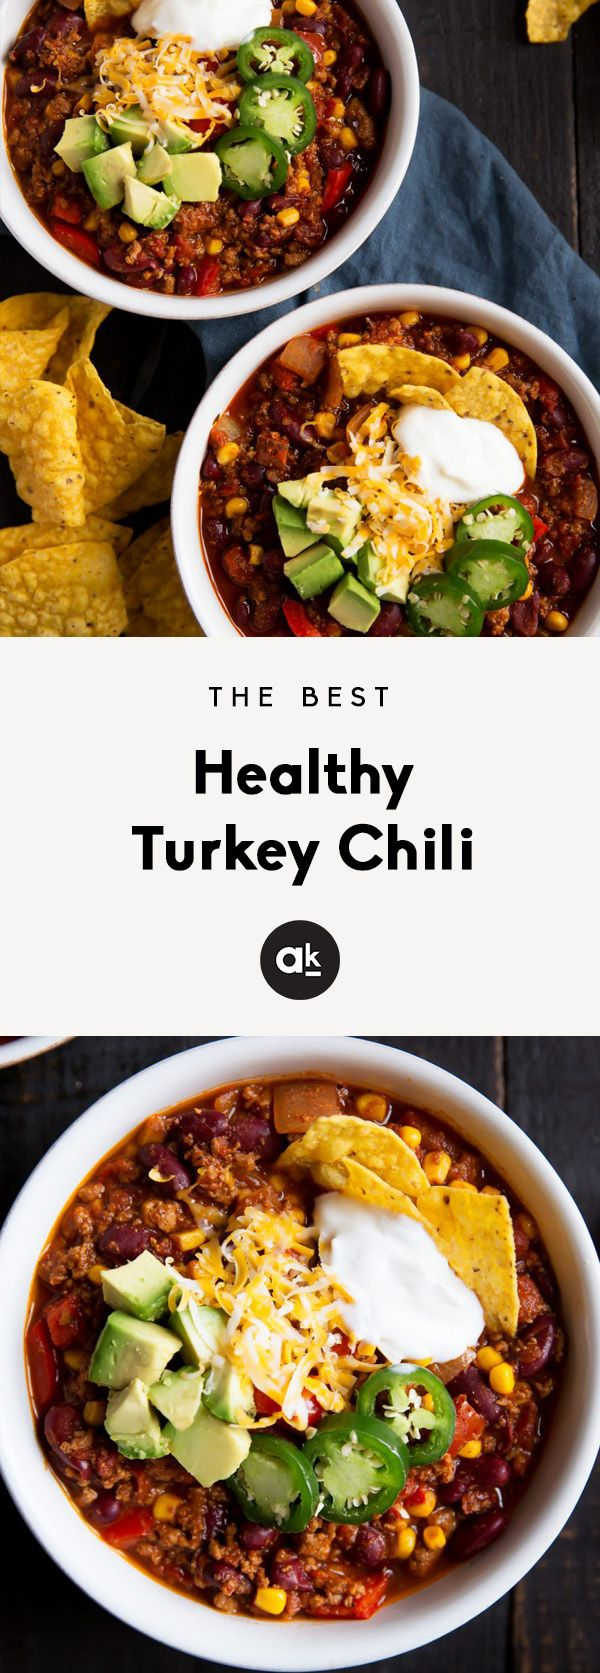 Seriously The Best Healthy Turkey Chili Recipe